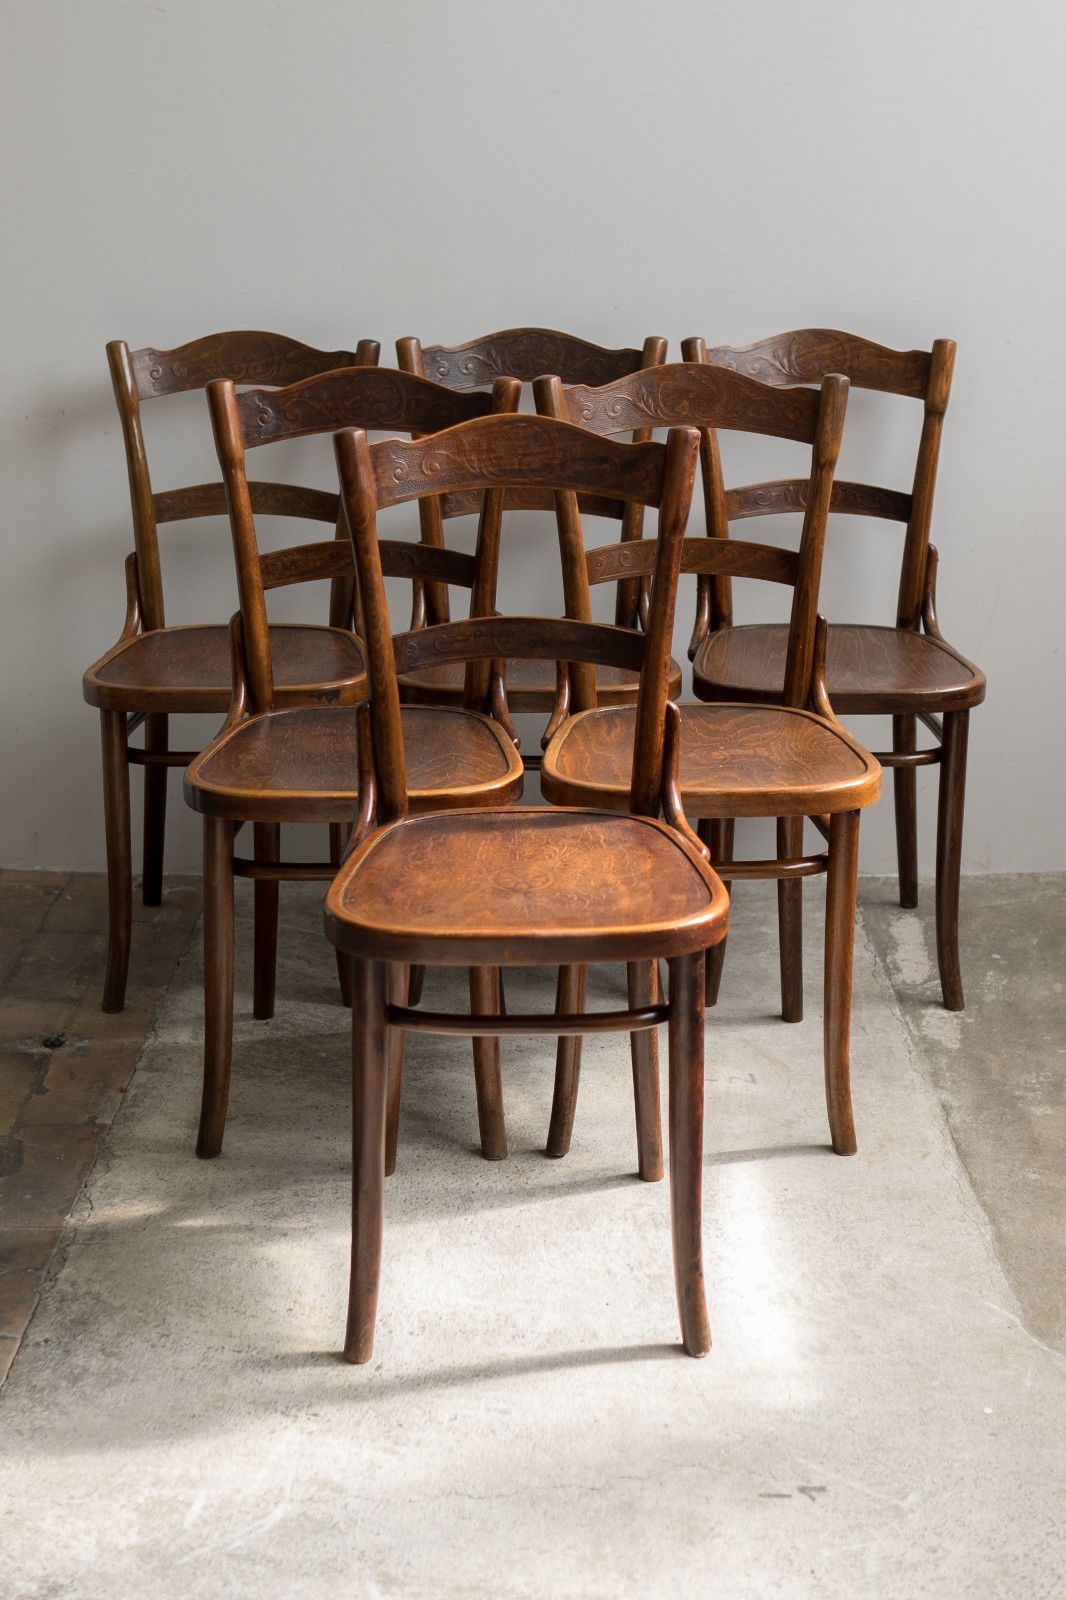 6er satz thonet bugholz st hle bistro kneipenst hle sitz r cken gepr gt um 1900 ebay thonet. Black Bedroom Furniture Sets. Home Design Ideas